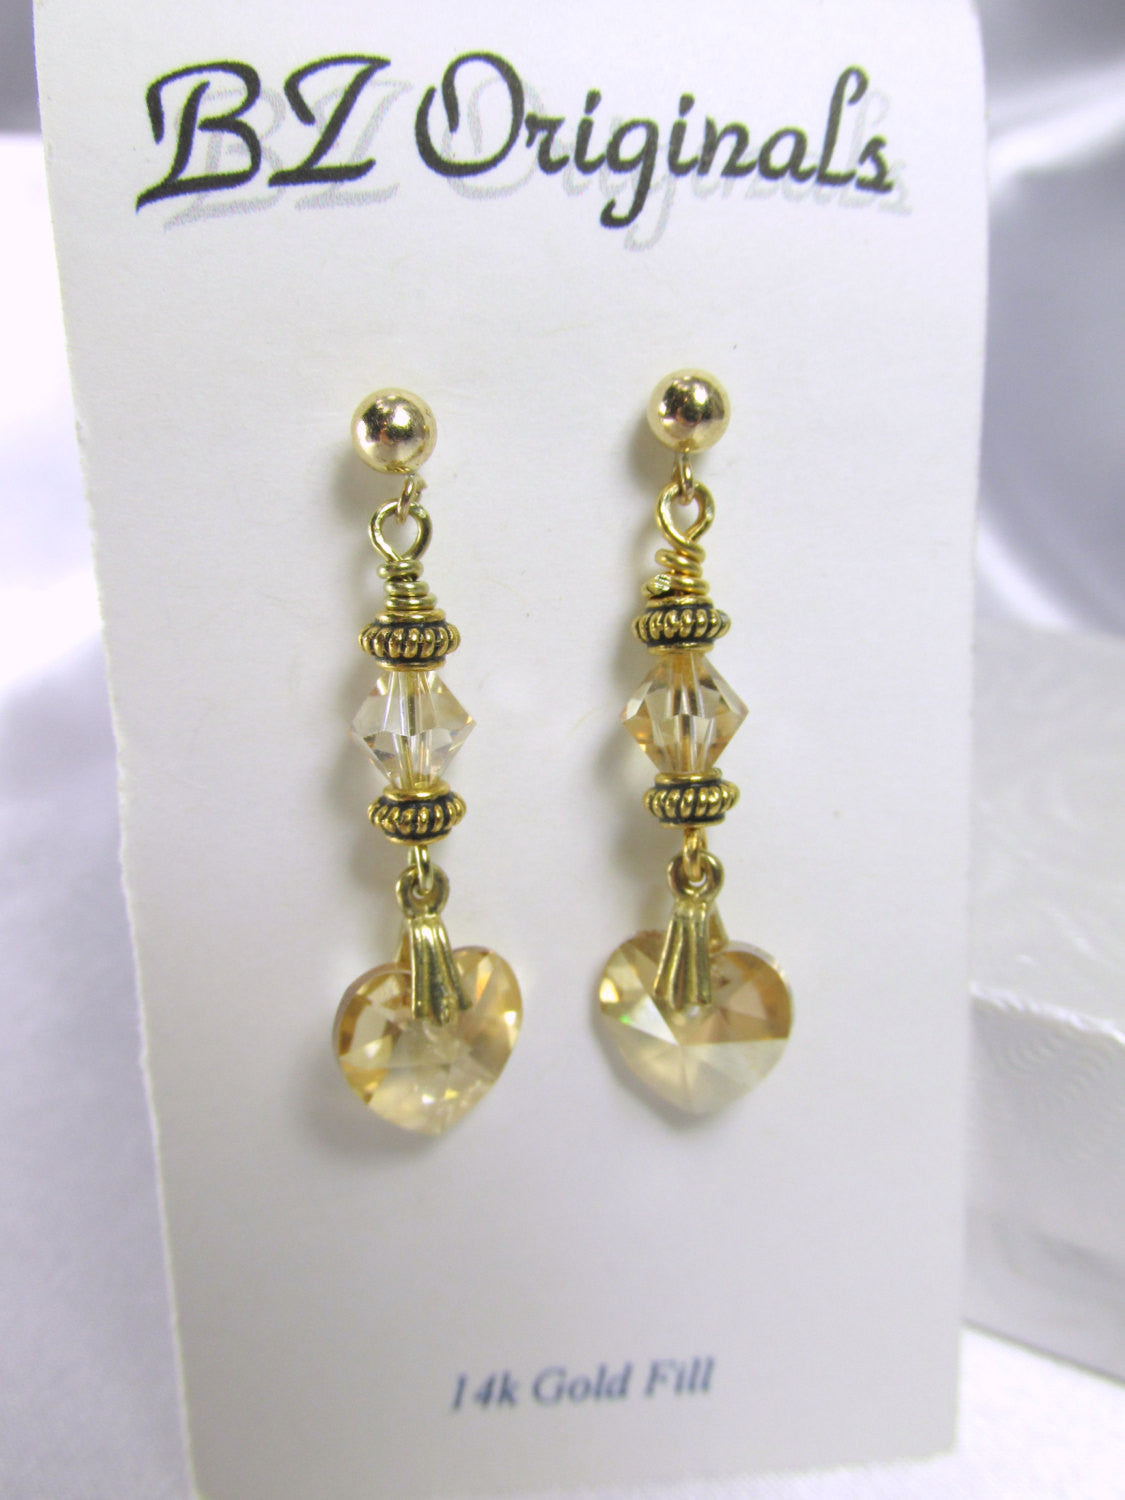 Swarovski Gold Heart Earrings in Light Colorado Topaz with 14k Gold Fill Posts - Odyssey Creations